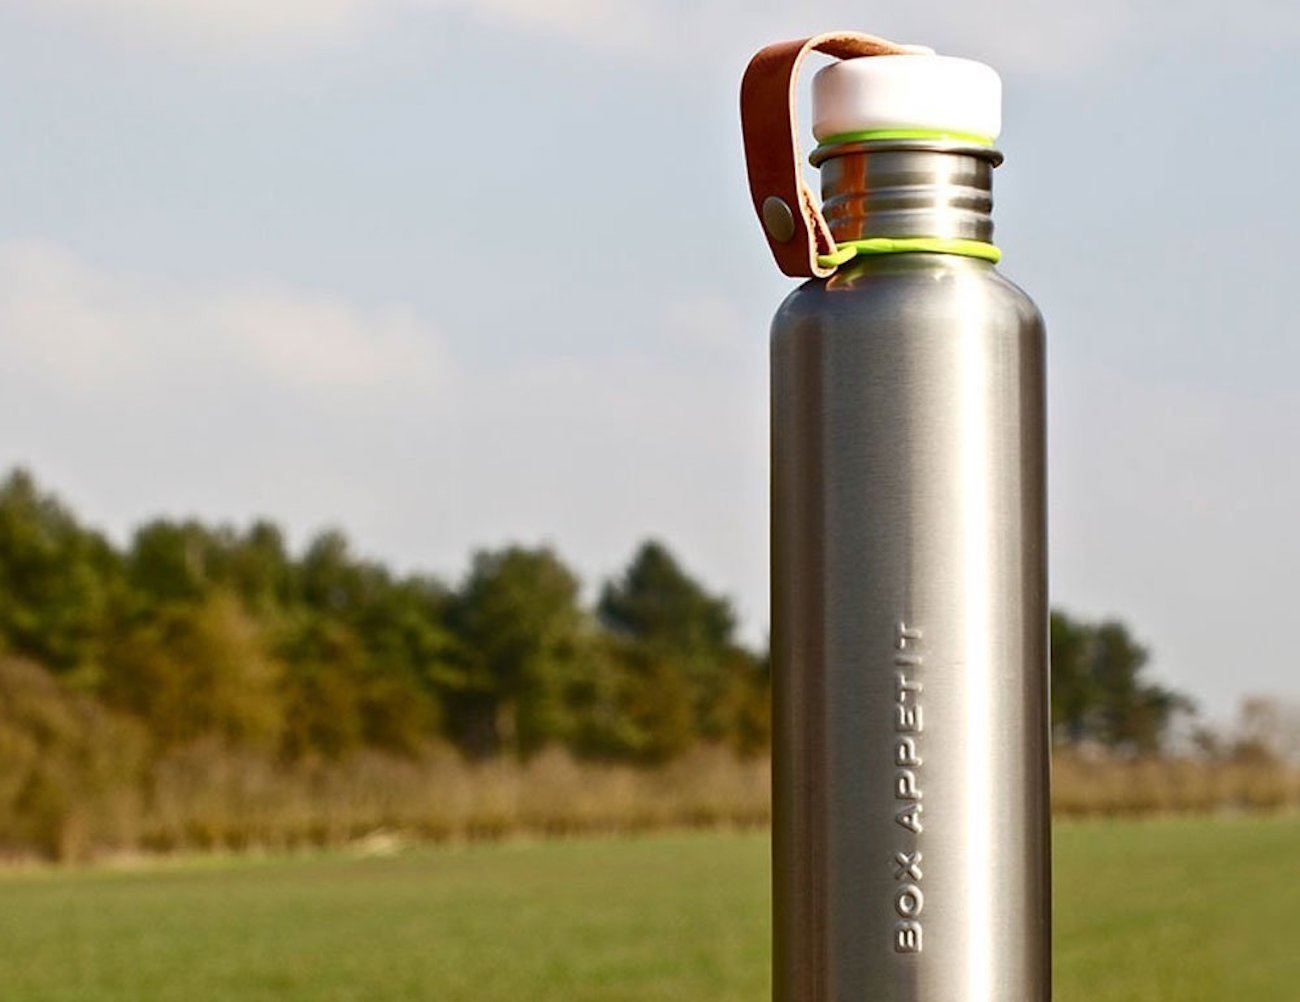 Box Appetit Stainless Steel Water Bottle